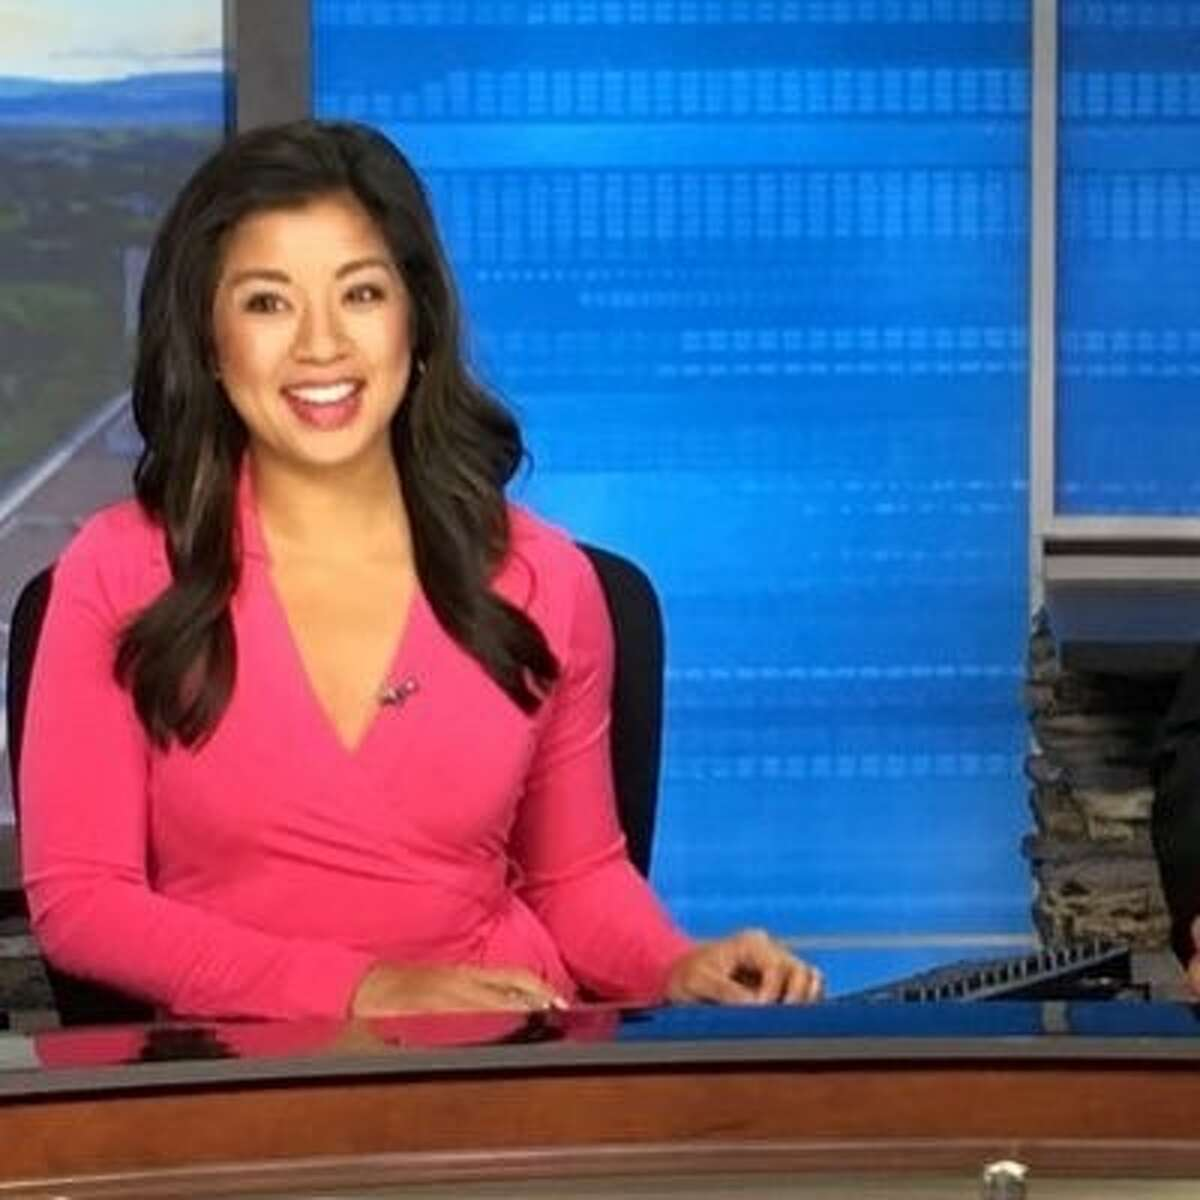 Click though the slideshow for 20 things you don't know about Melissa Lee from CBS 6.